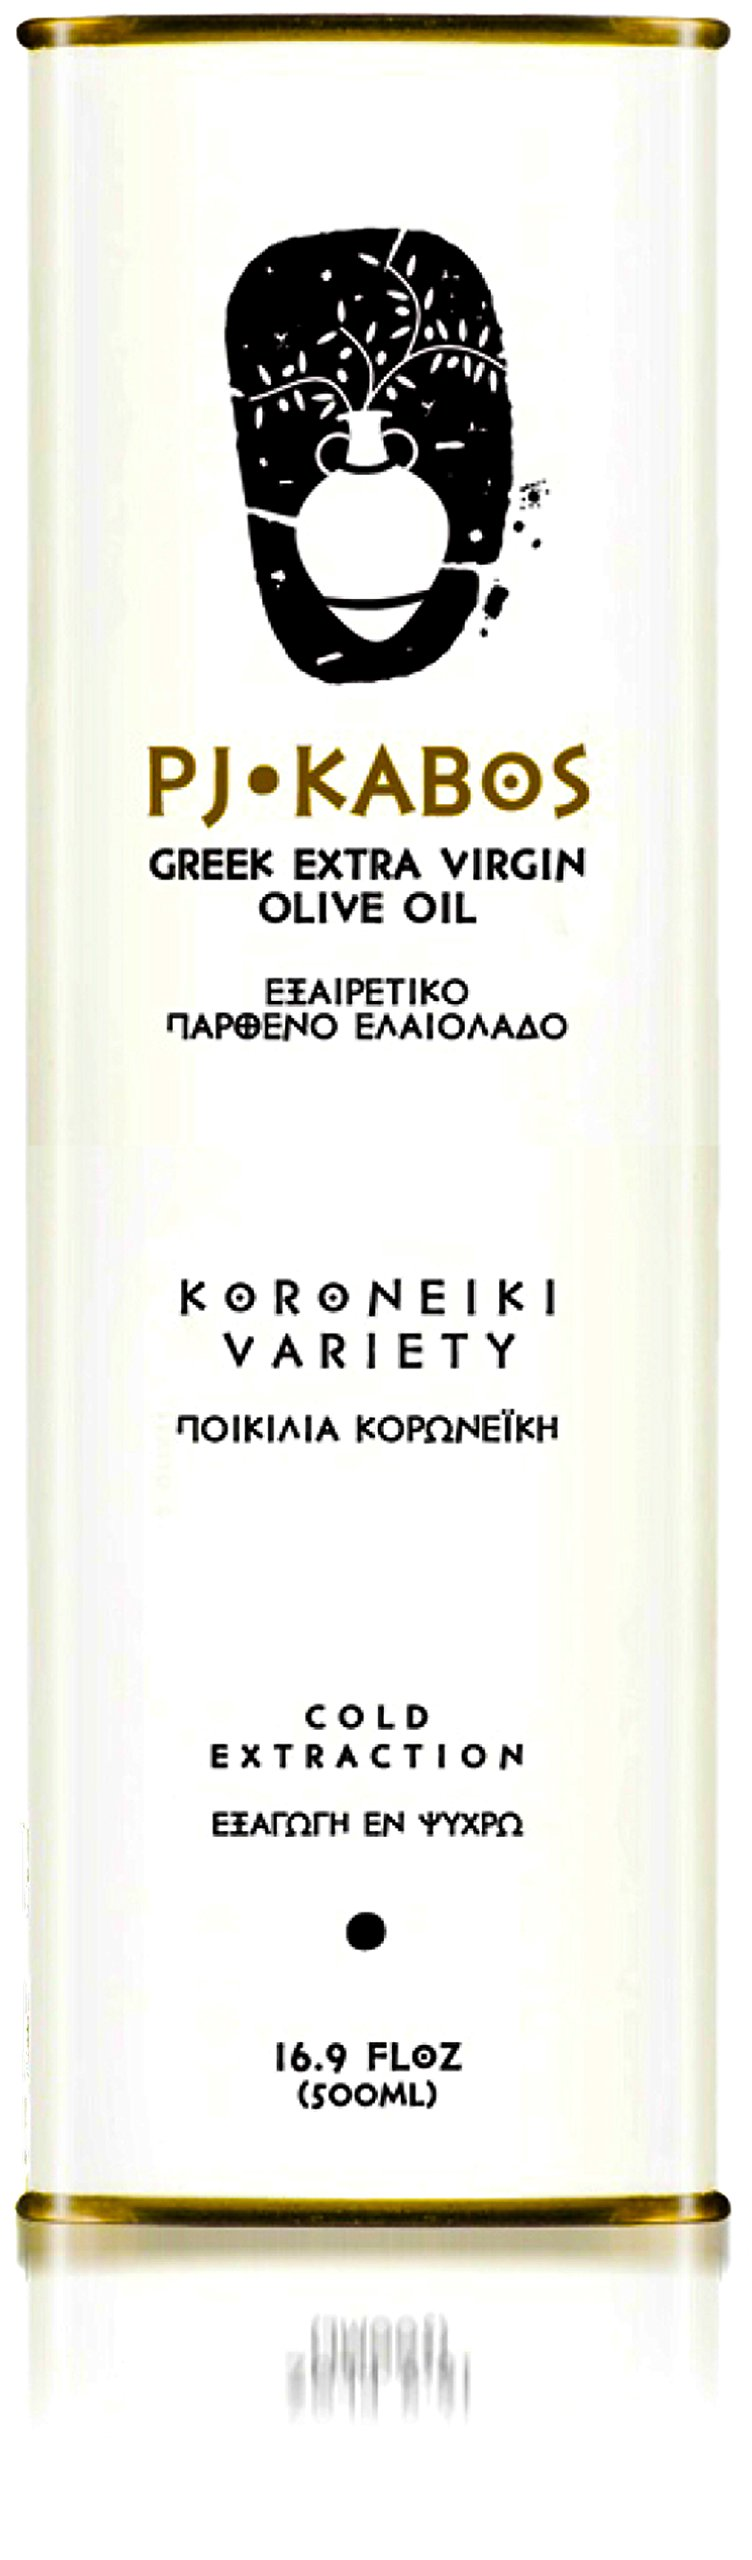 2017/18 FRESH harvest PJ KABOS 16.9Floz Greek Extra Virgin Olive Oil | 100% FRESH olive oil born in Ancient Olympia vicinity and sent via AIR to the USA| From Greece | KORONEIKI Variety |